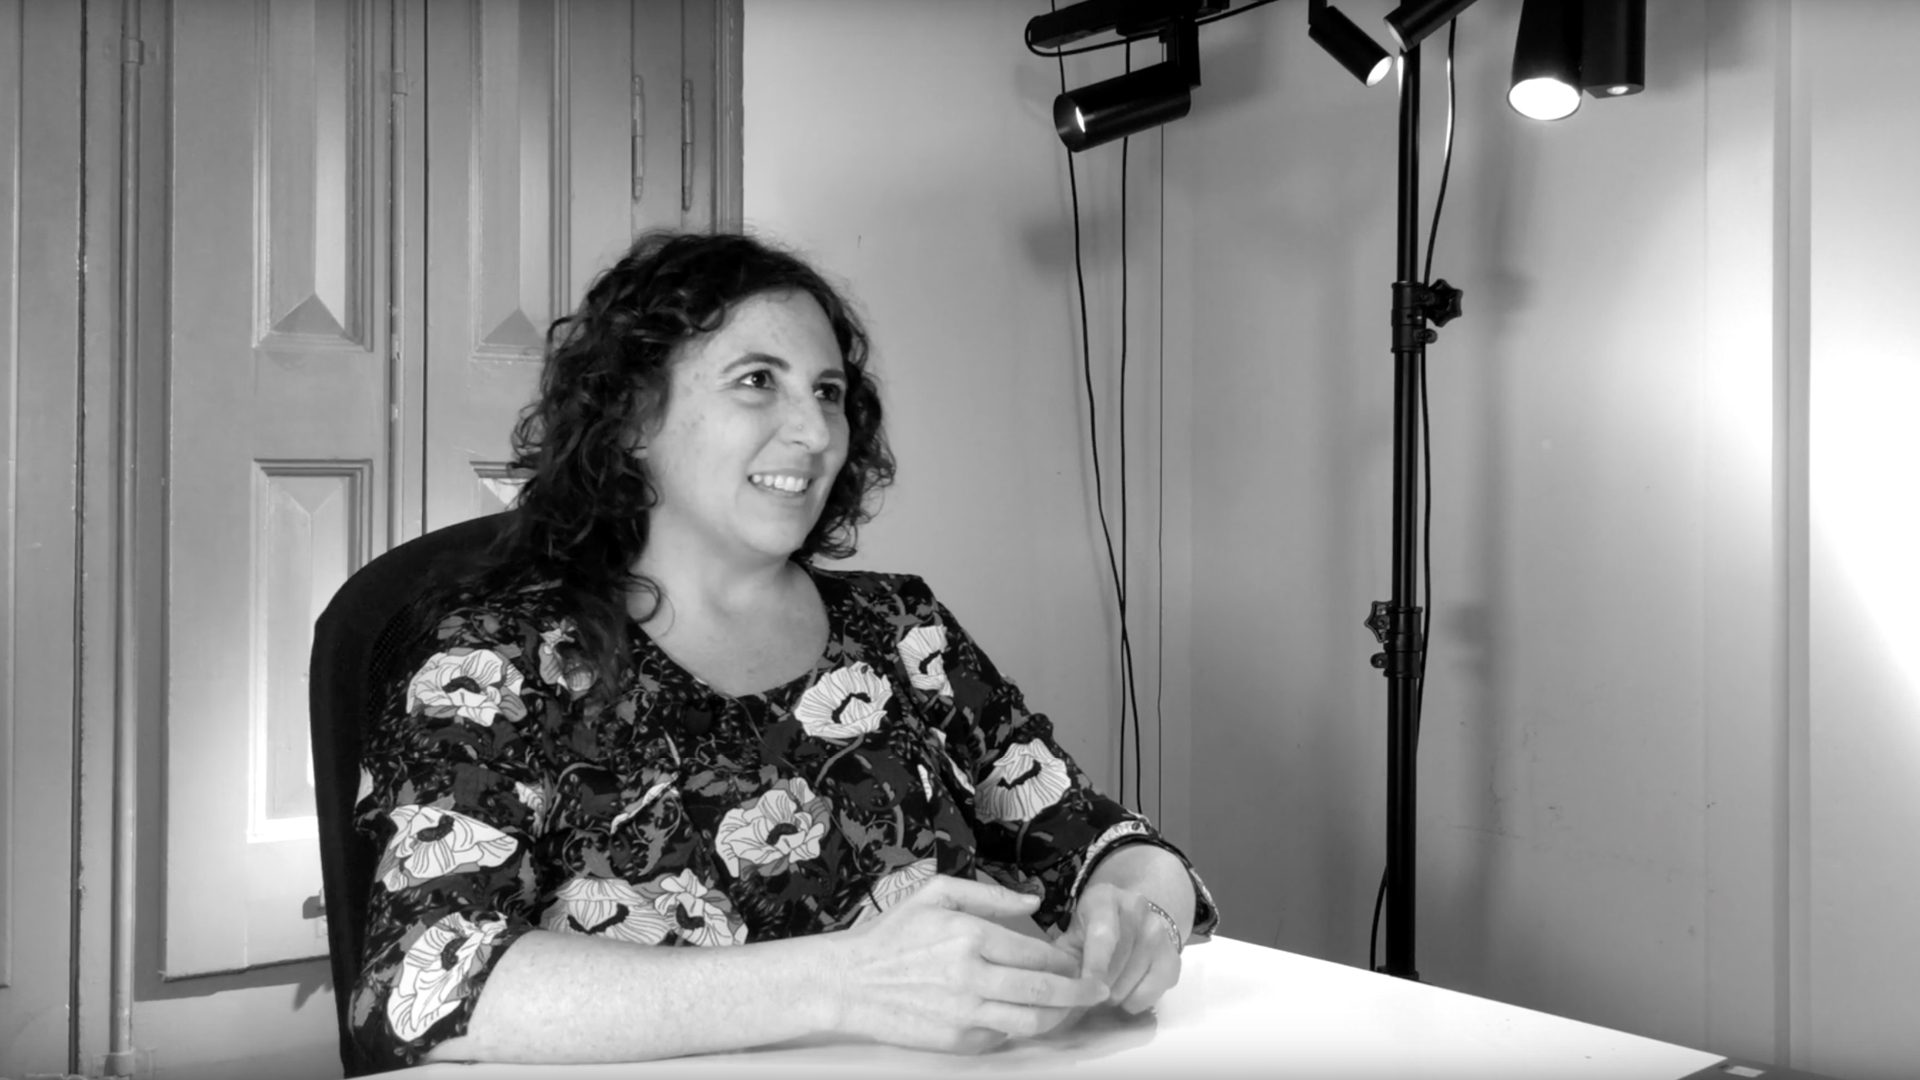 An interview with Alessandra Bertolini, from Artec3 Studio, for Women in Lighting| Alessandra Bertolini | Artec3 Studio | Women in Lighting| Light Collective| STIR